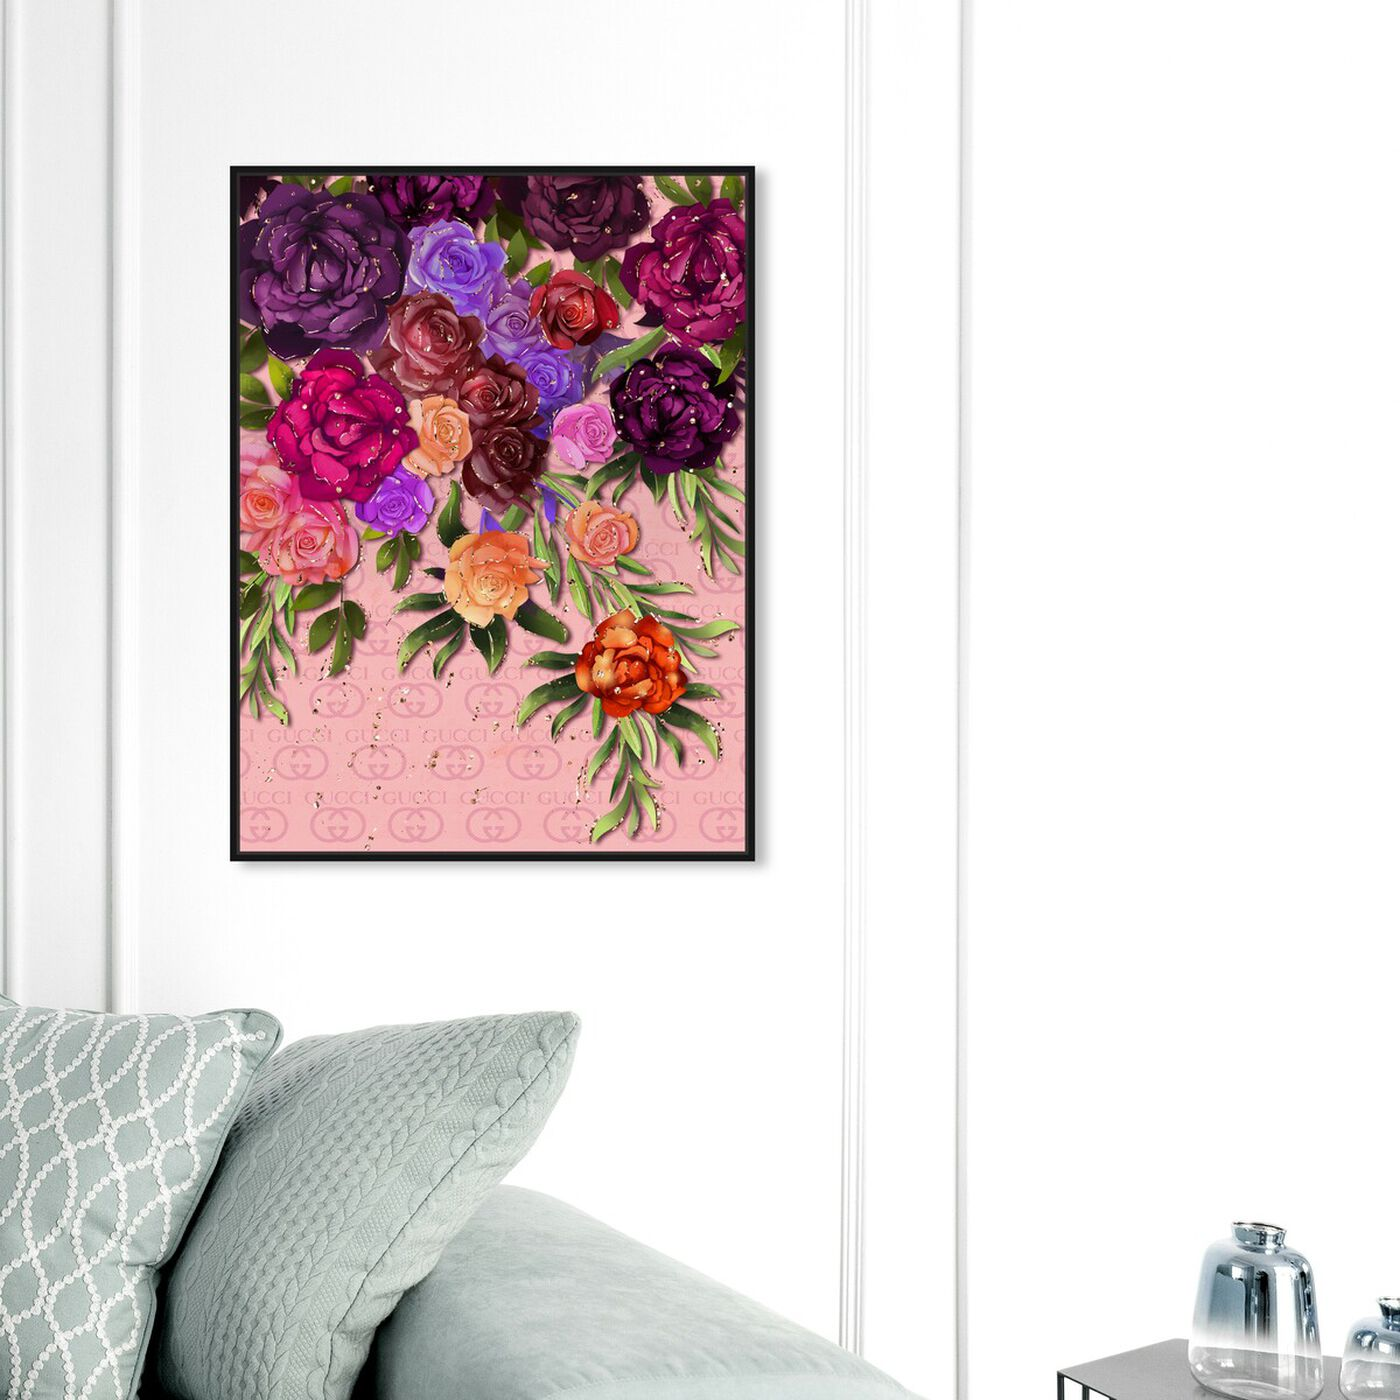 Hanging view of Garden Floral Fashion featuring floral and botanical and florals art.